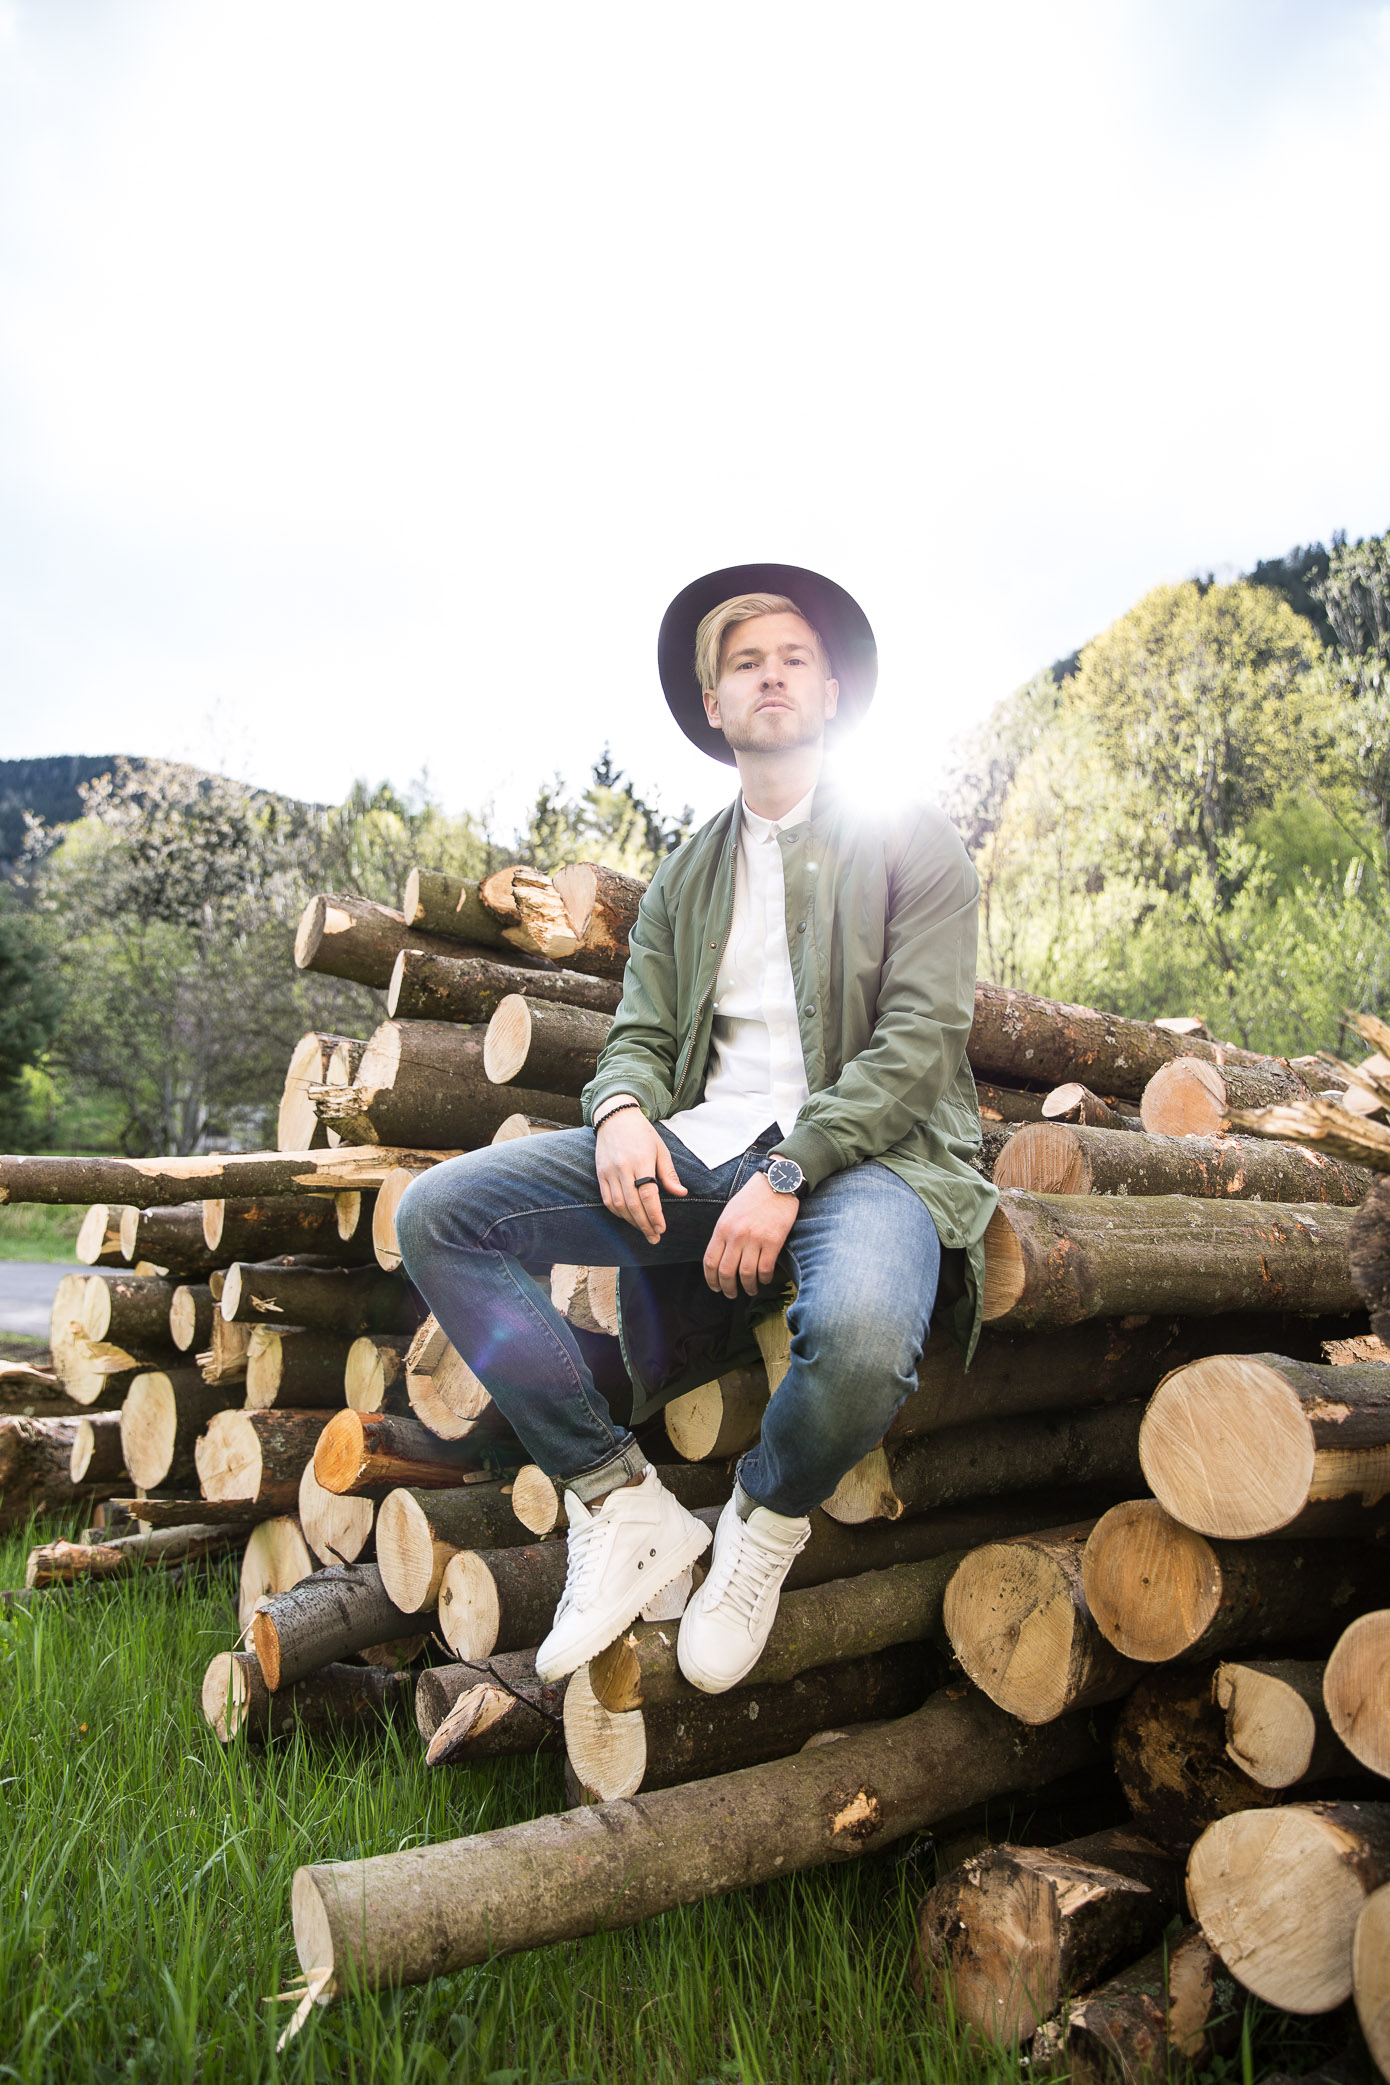 The Explorer | Discovering Semmering with Vangardist & Mini | Outfit by Carlings